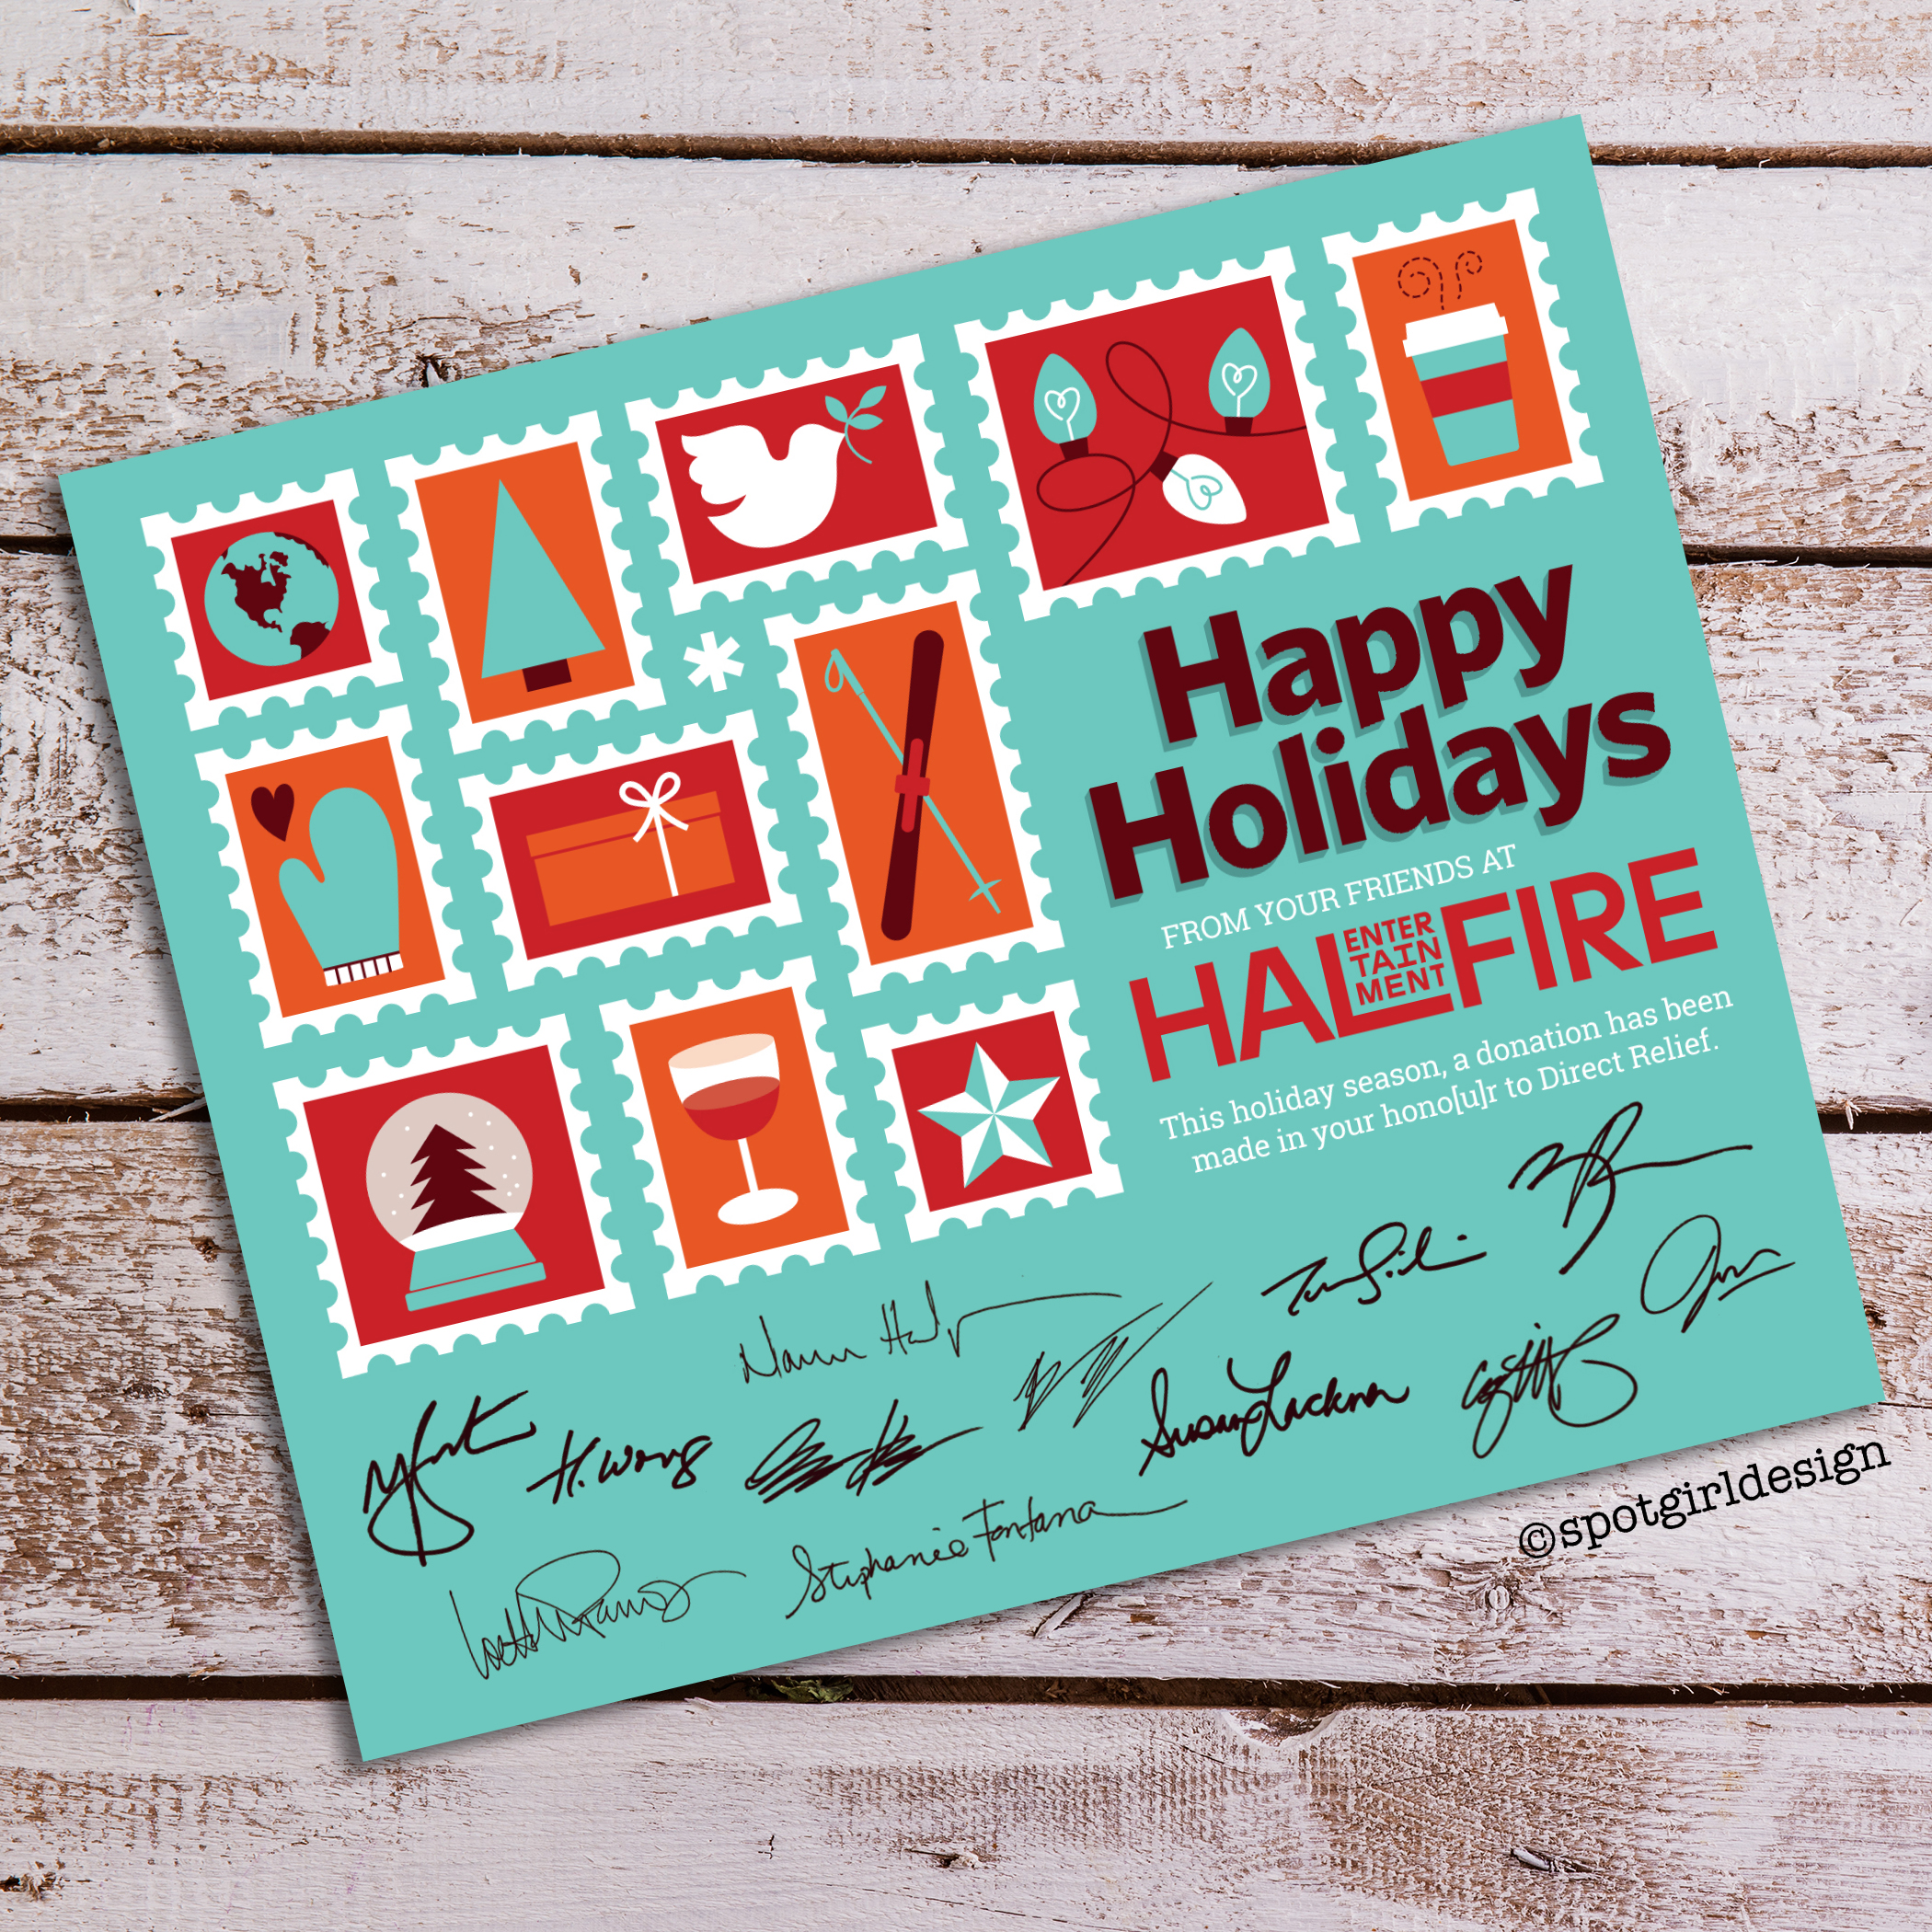 Halfire Holiday Card 2019